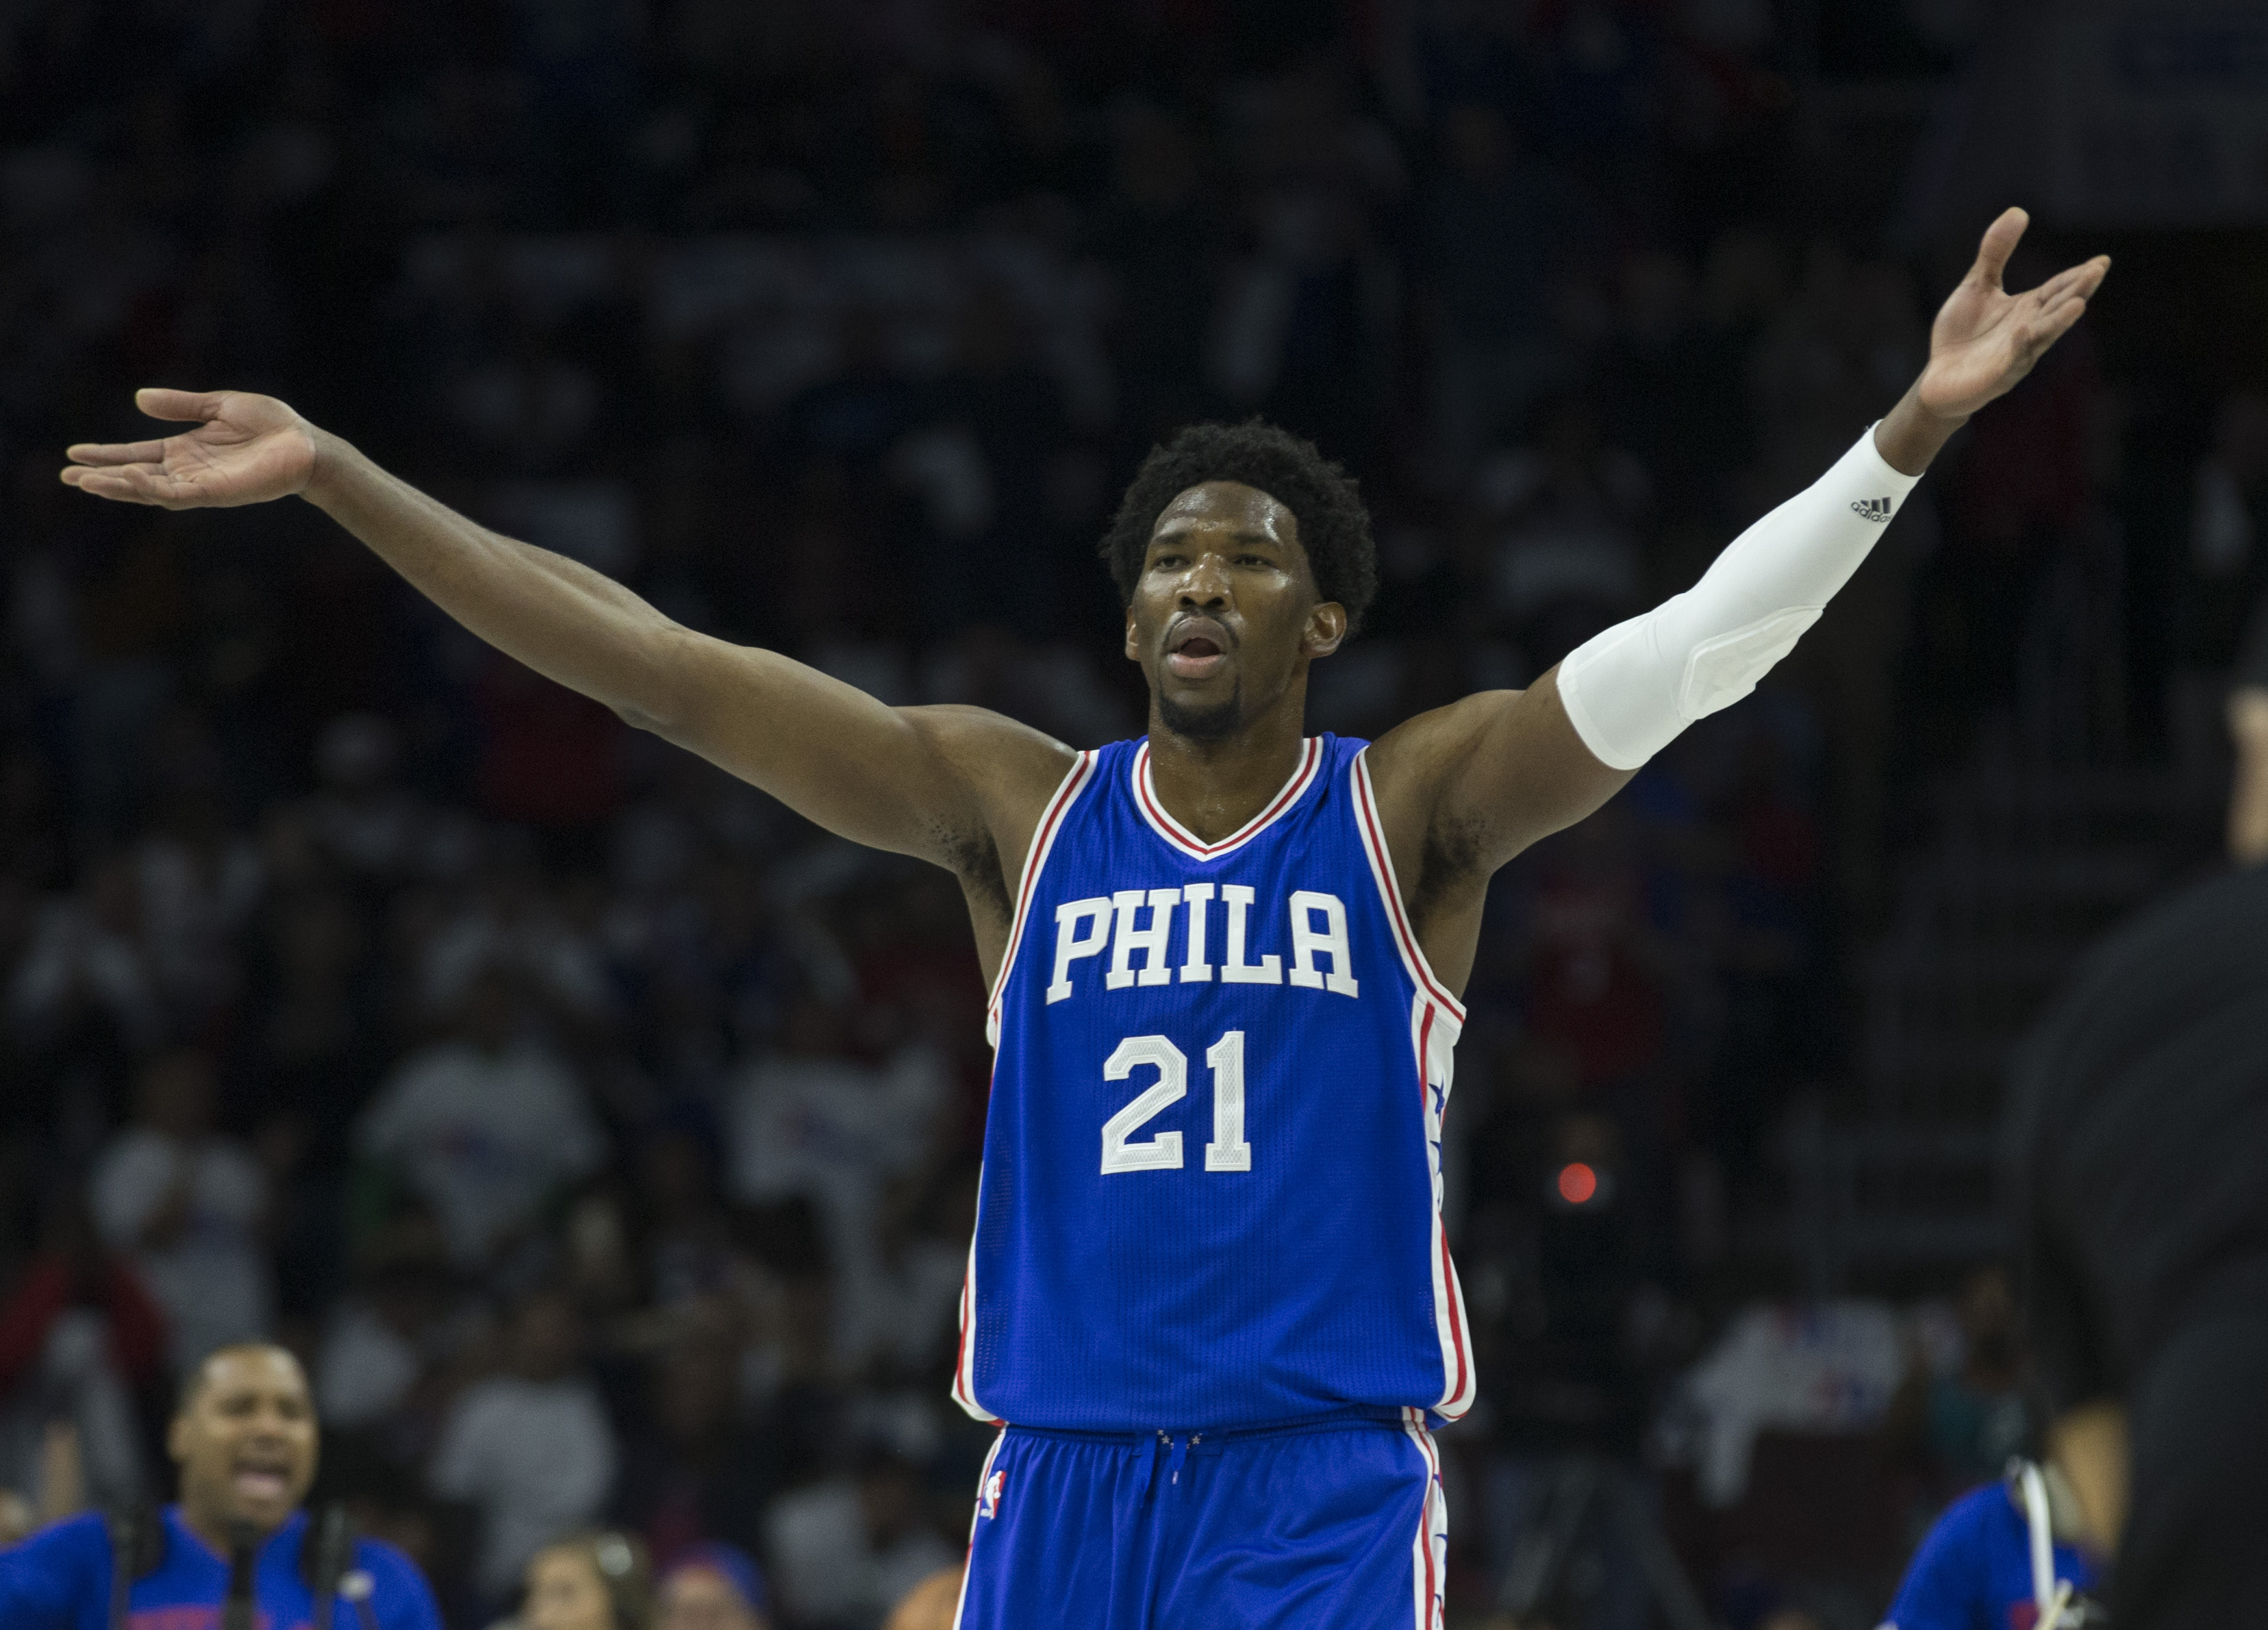 Sixers sign Joel Embiid to max rookie extension